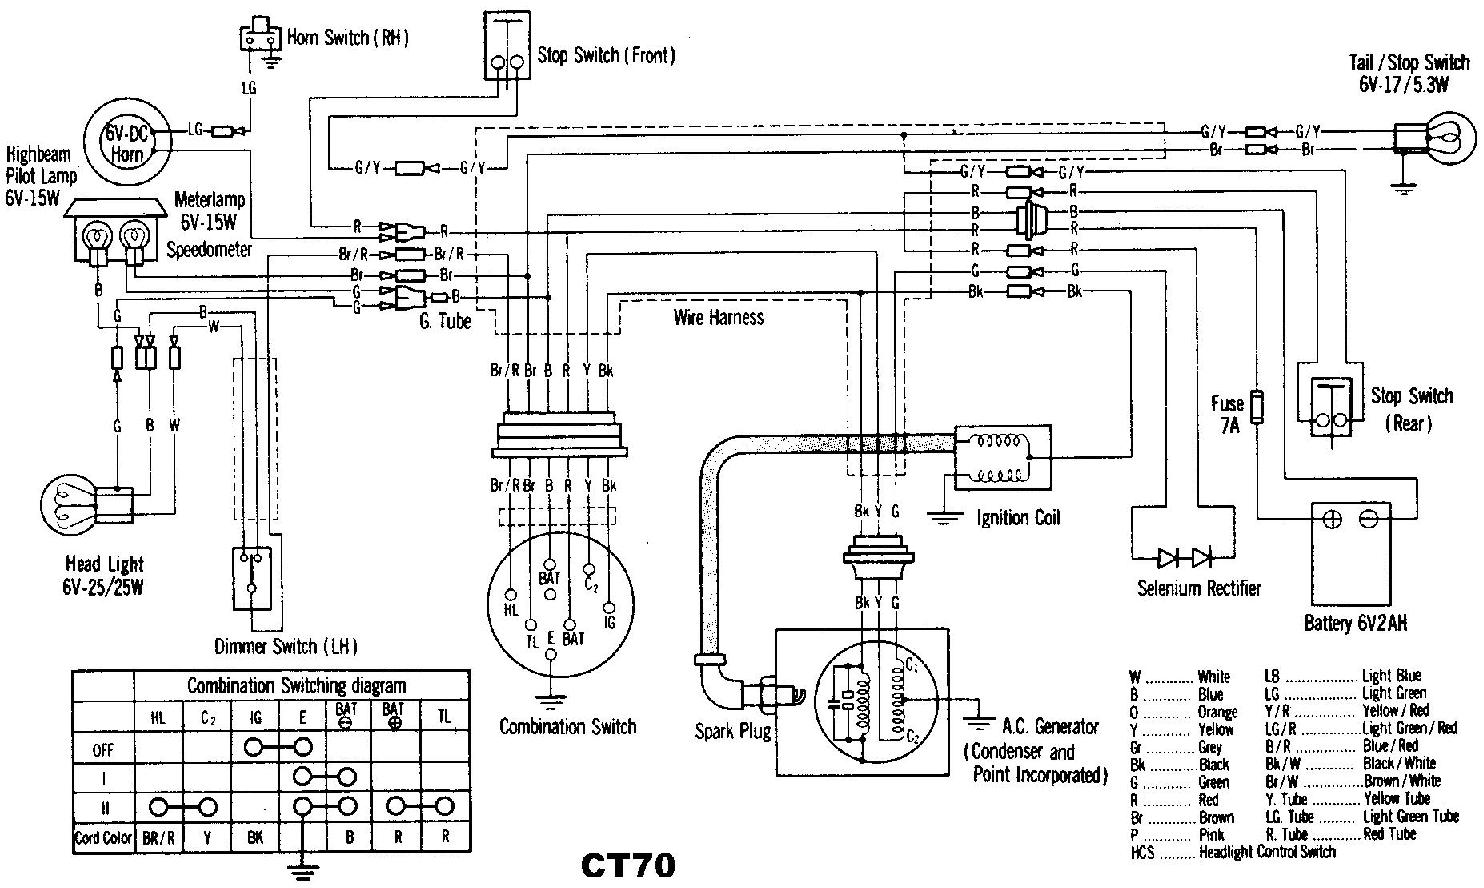 dratv_2269_123803613 diagram for honda c70 wiring wiring diagrams instruction c70 wiring diagram at alyssarenee.co